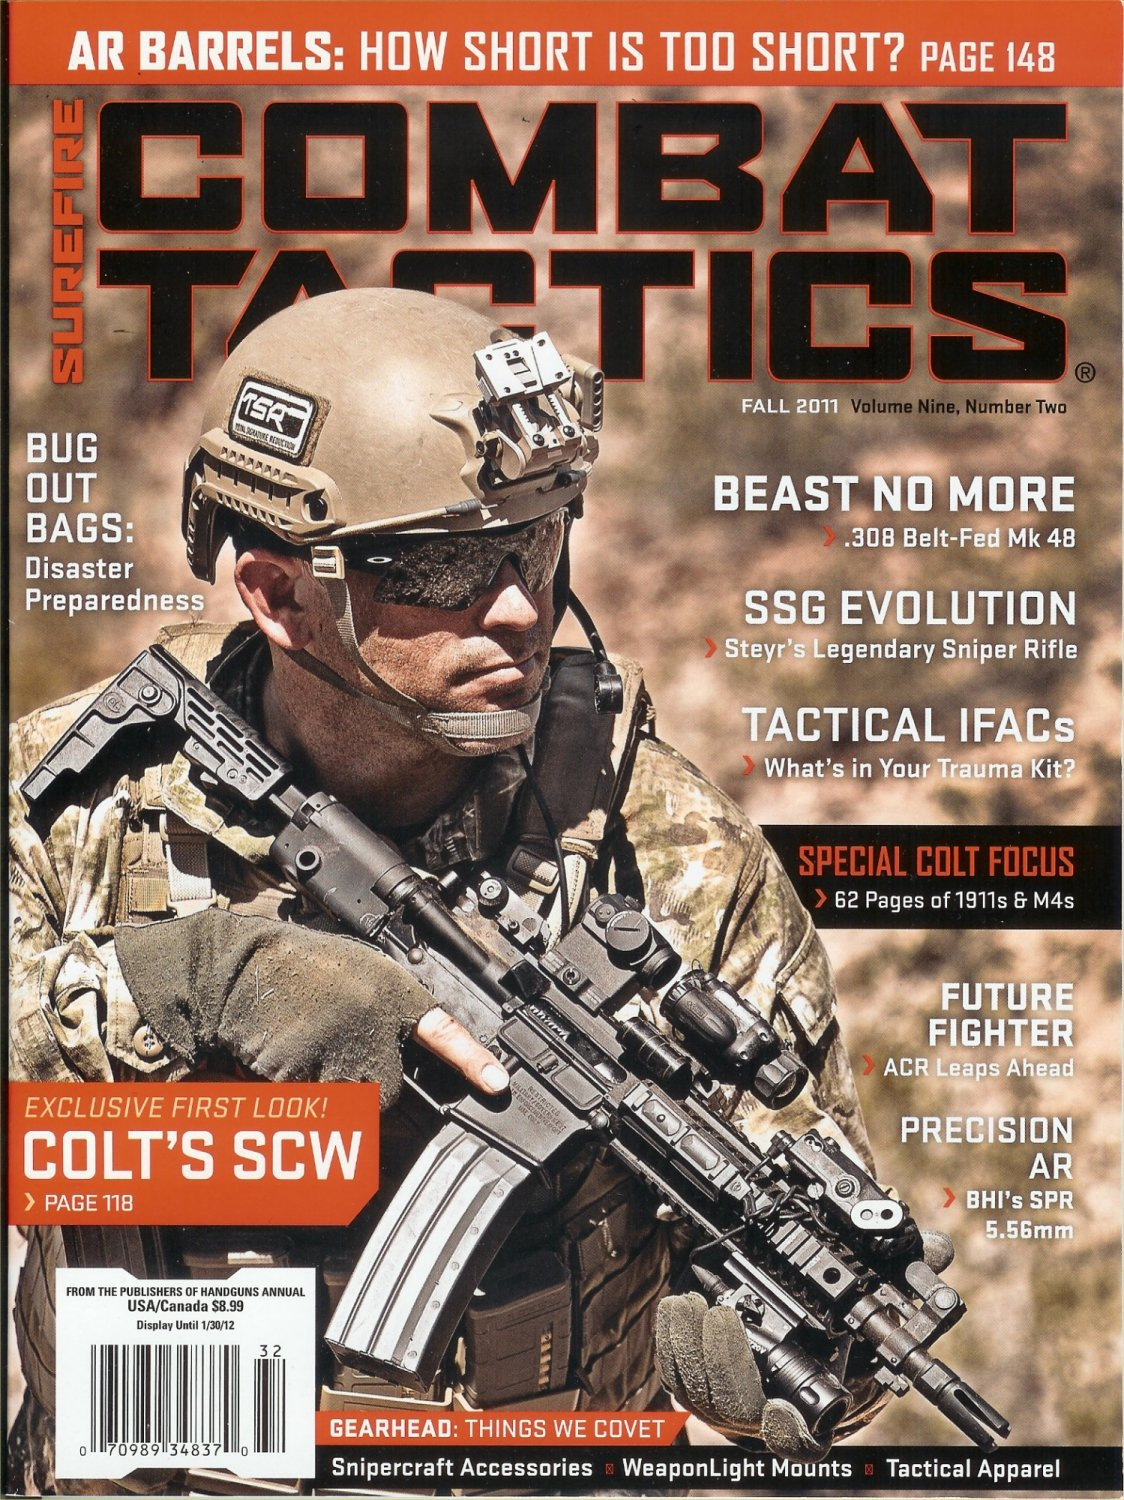 SureFire Combat Tactics Magazine Fall 2011 Issue Cover Colt SCW Sub Compact Weapon Orion Design Combat Camo Camouflage small DR Heads Up: Latest issue of SureFire Combat Tactics Magazine (Fall 2011 Issue) coming out, so go pick it up!